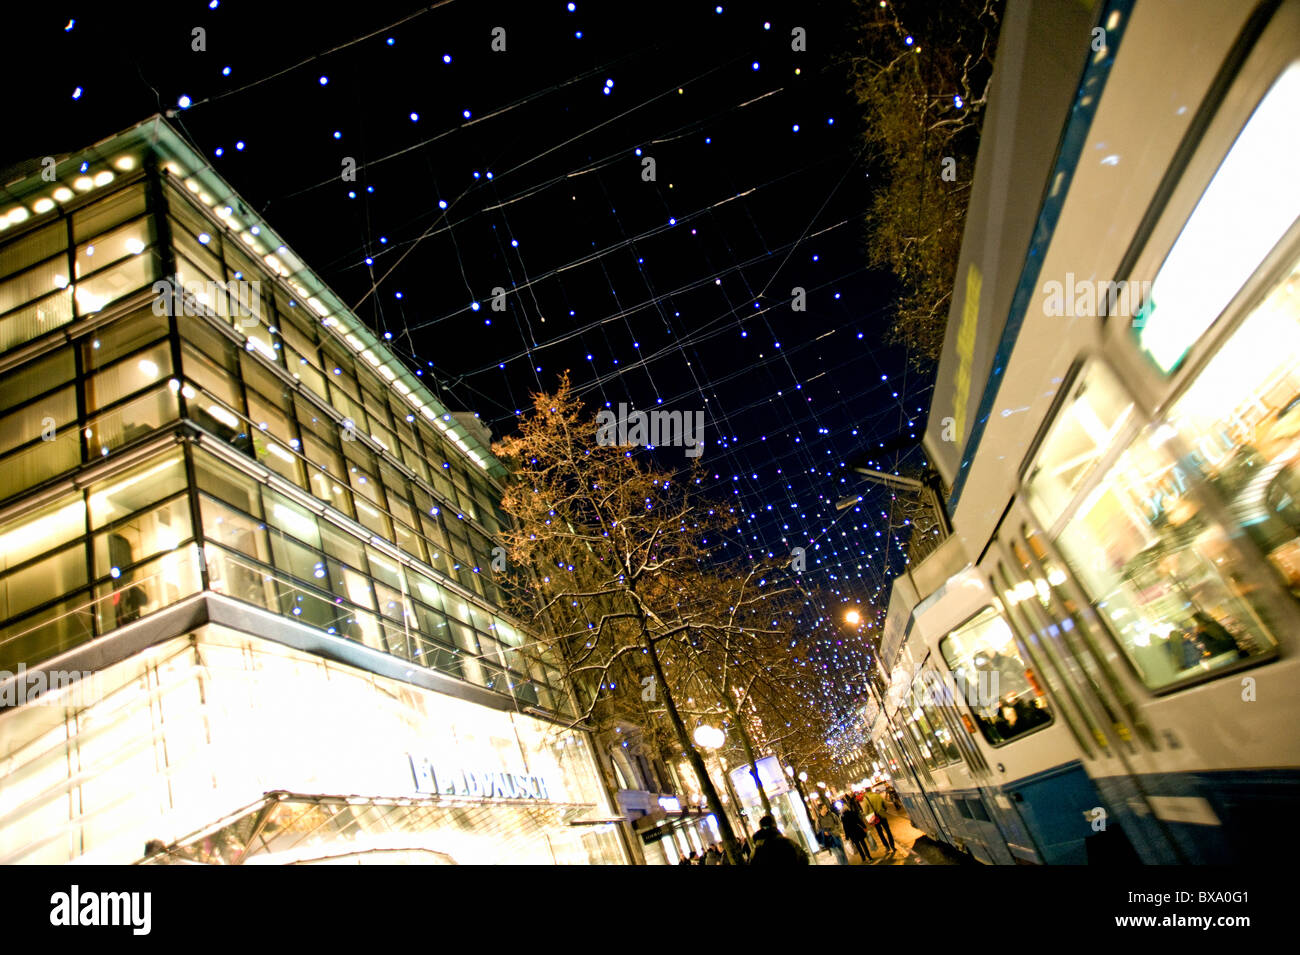 Bahnhofstrasse with christmas lights in Zurich, Switzerland. - Stock Image